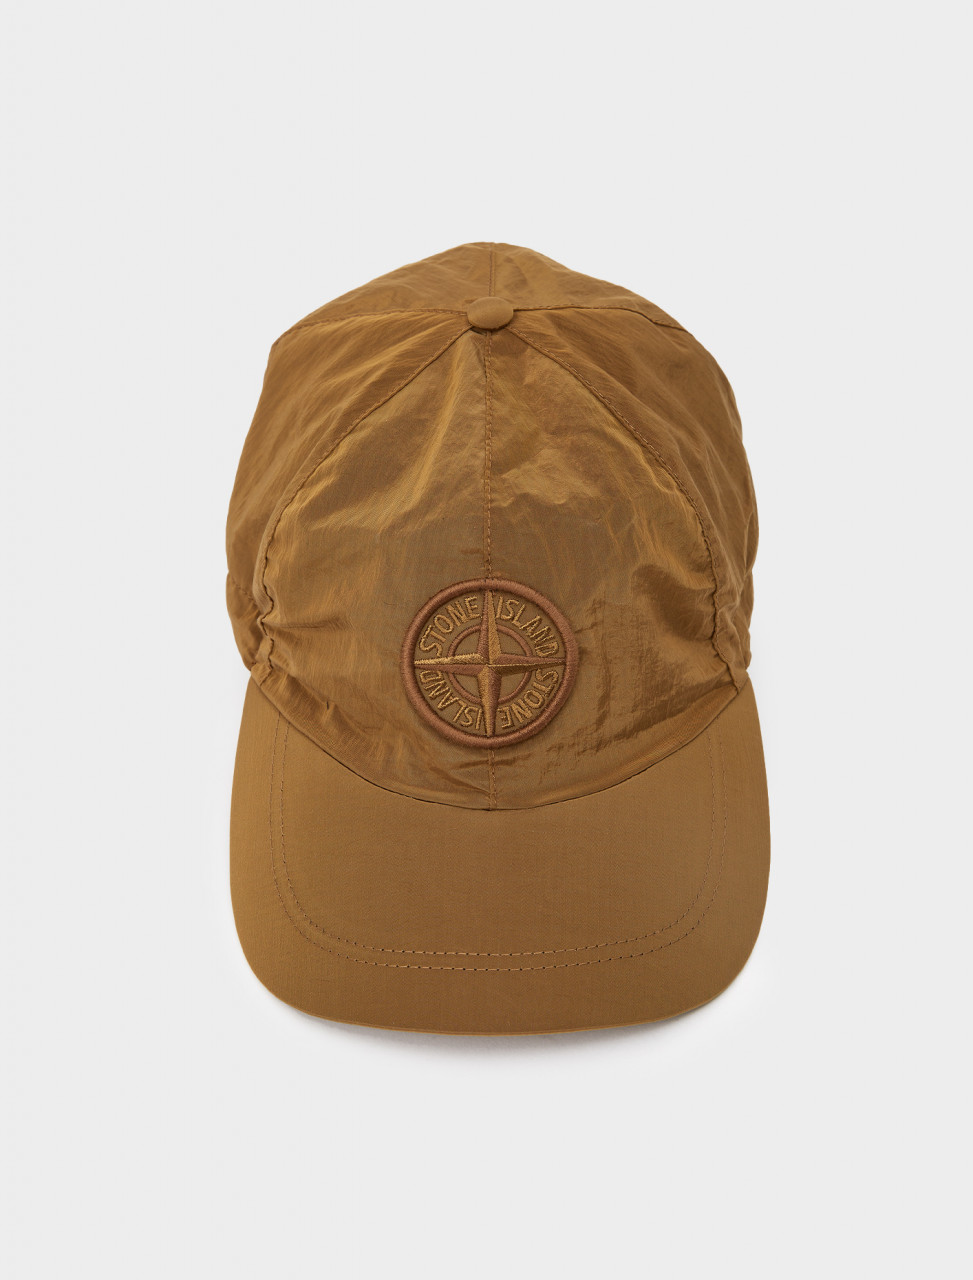 241-MO731599576-V0071 STONE ISLAND HAT BROWN